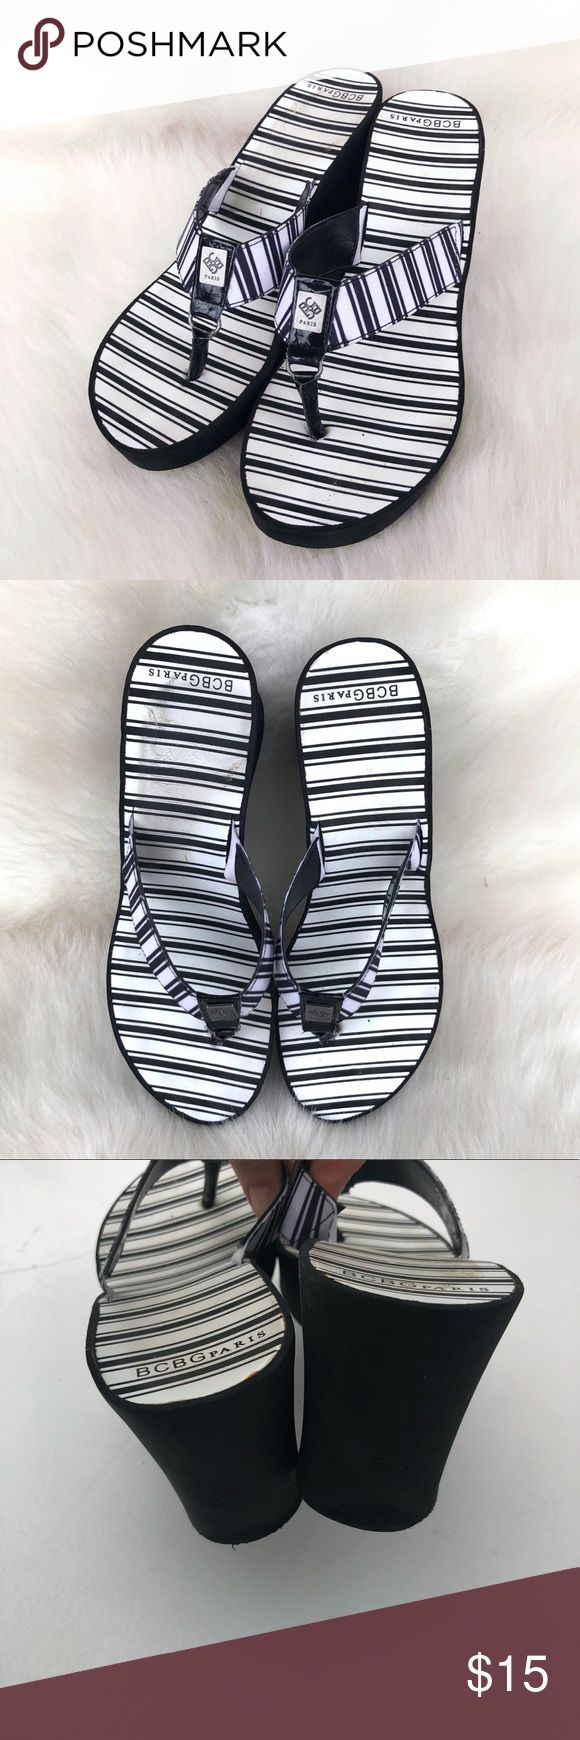 """BCBGeneration platform flip flops Super cute wedges/platforms from BCBGENERATION. Black and white with silver logo Heel is 3.25"""" high Great used condition with slight signs of wear. Mostly on the sole. Size 9, definitely fits more like an eight. BCBGeneration Shoes Sandals"""